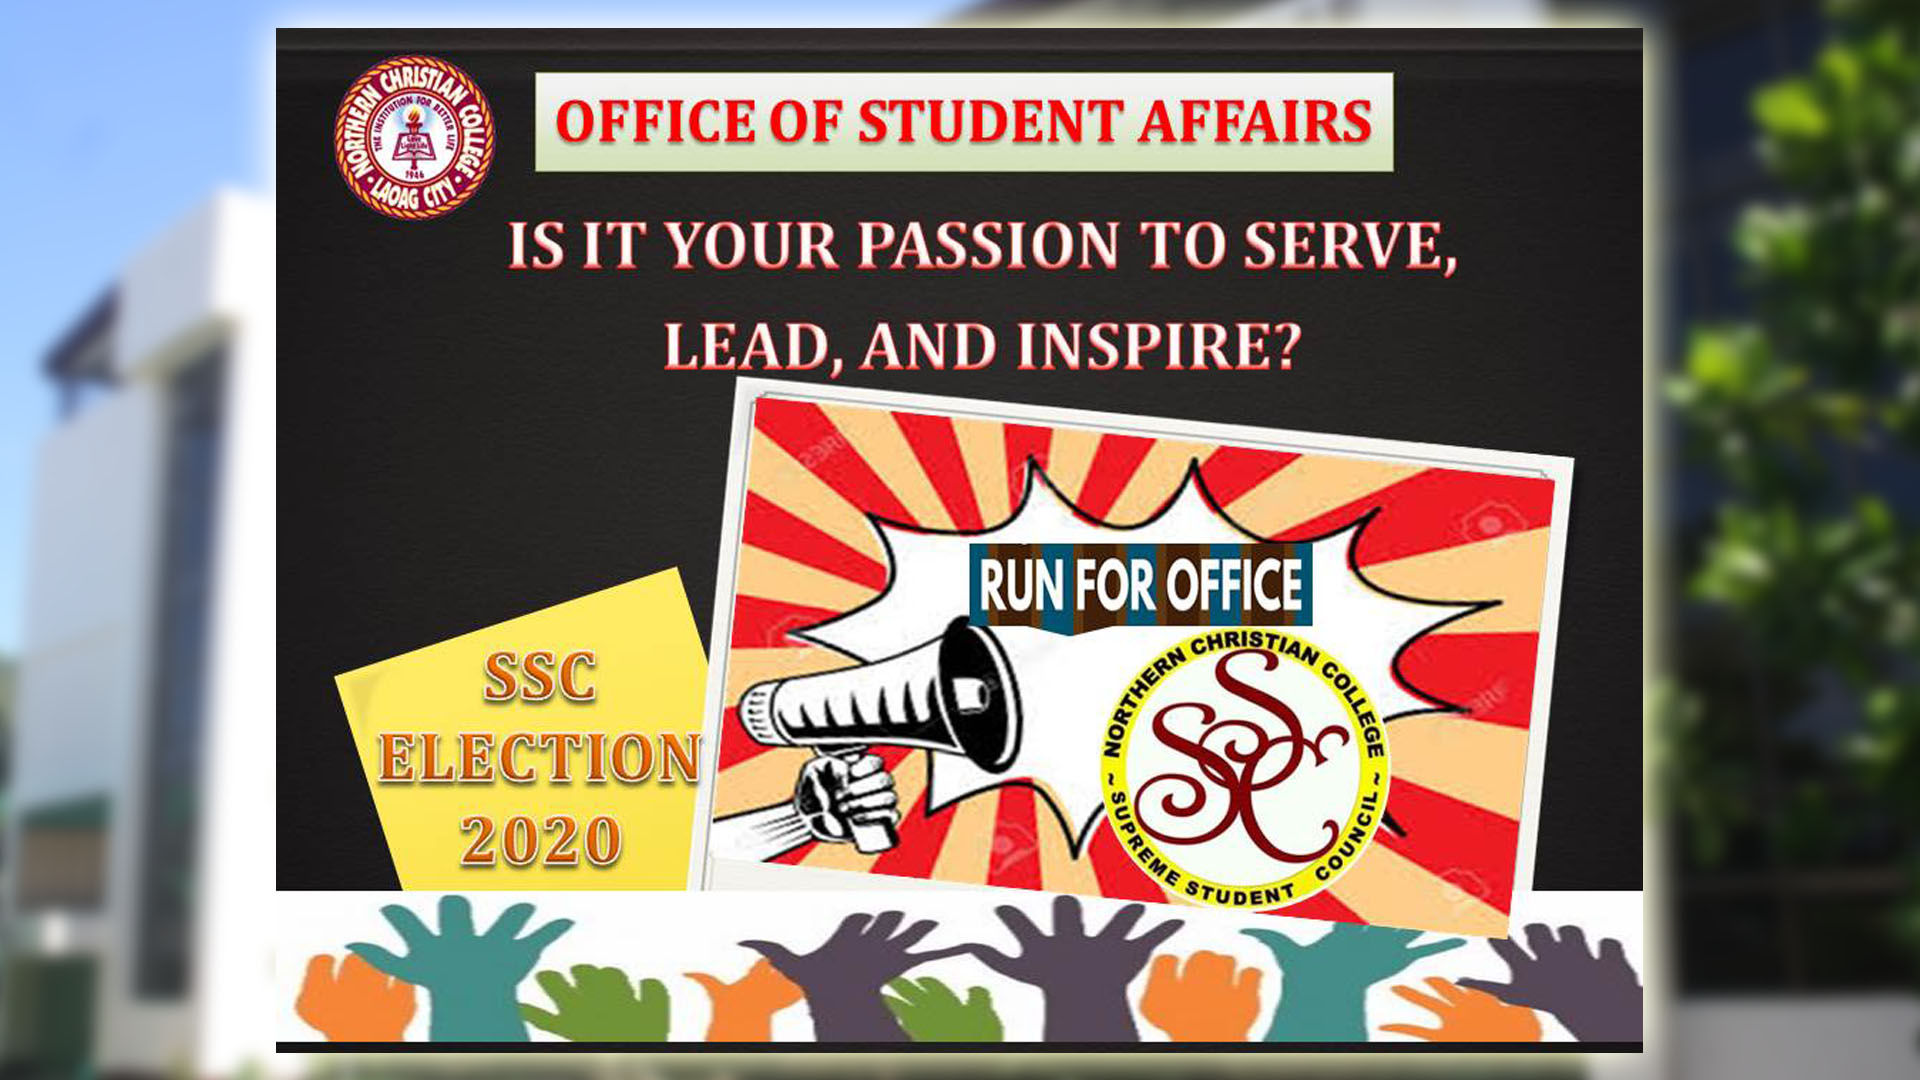 SSC Election 2020